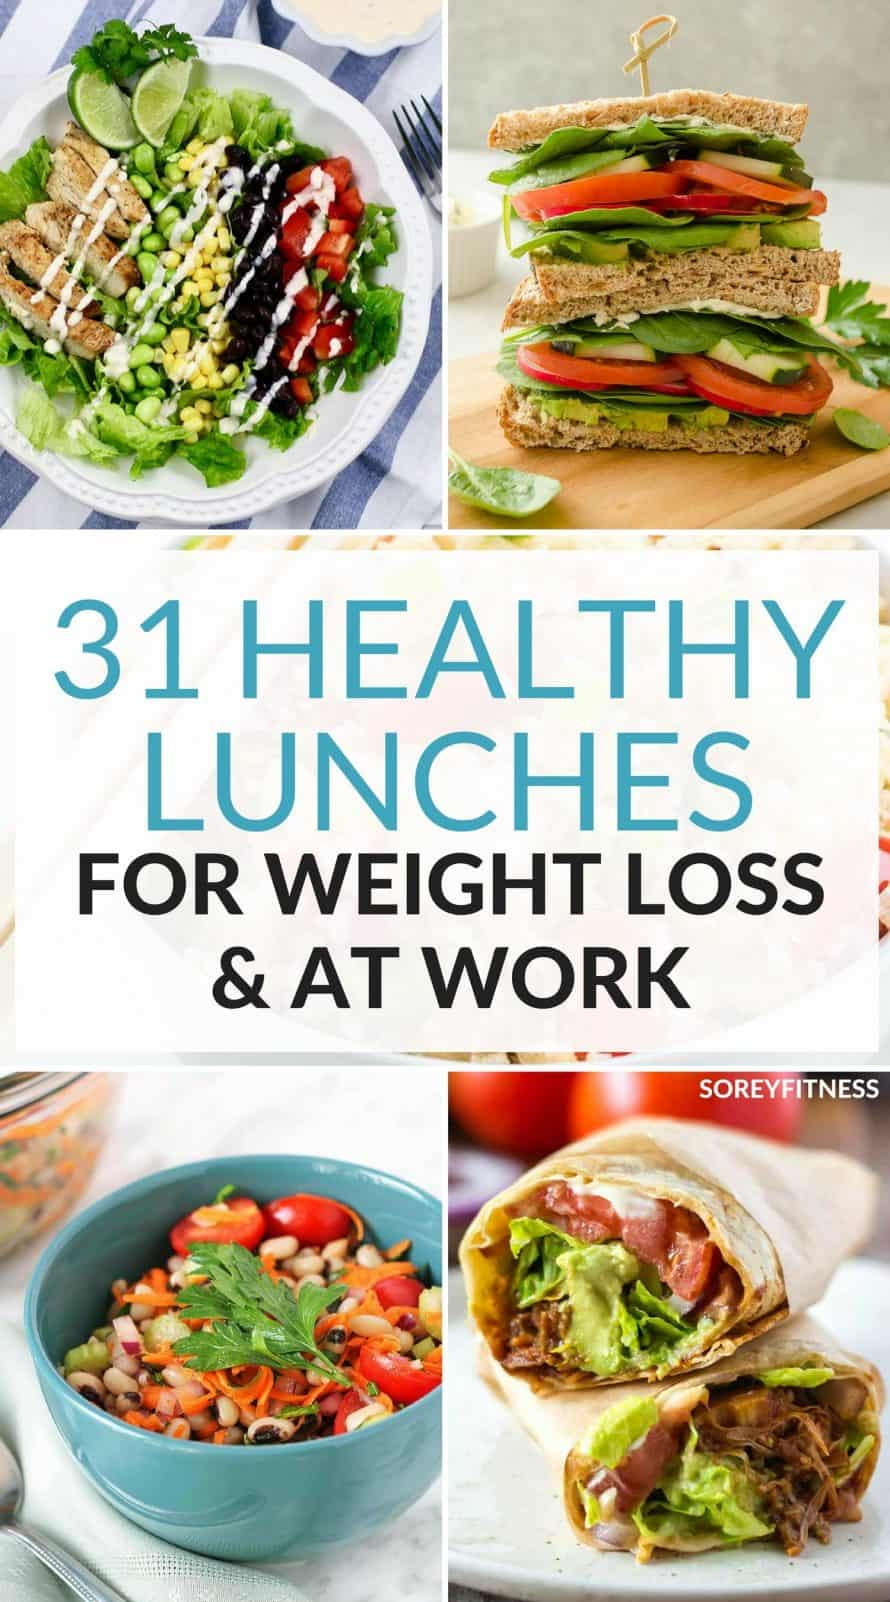 Healthy Meal Recipes For Weight Loss  31 Healthy Lunch Ideas For Weight Loss Easy Meals for